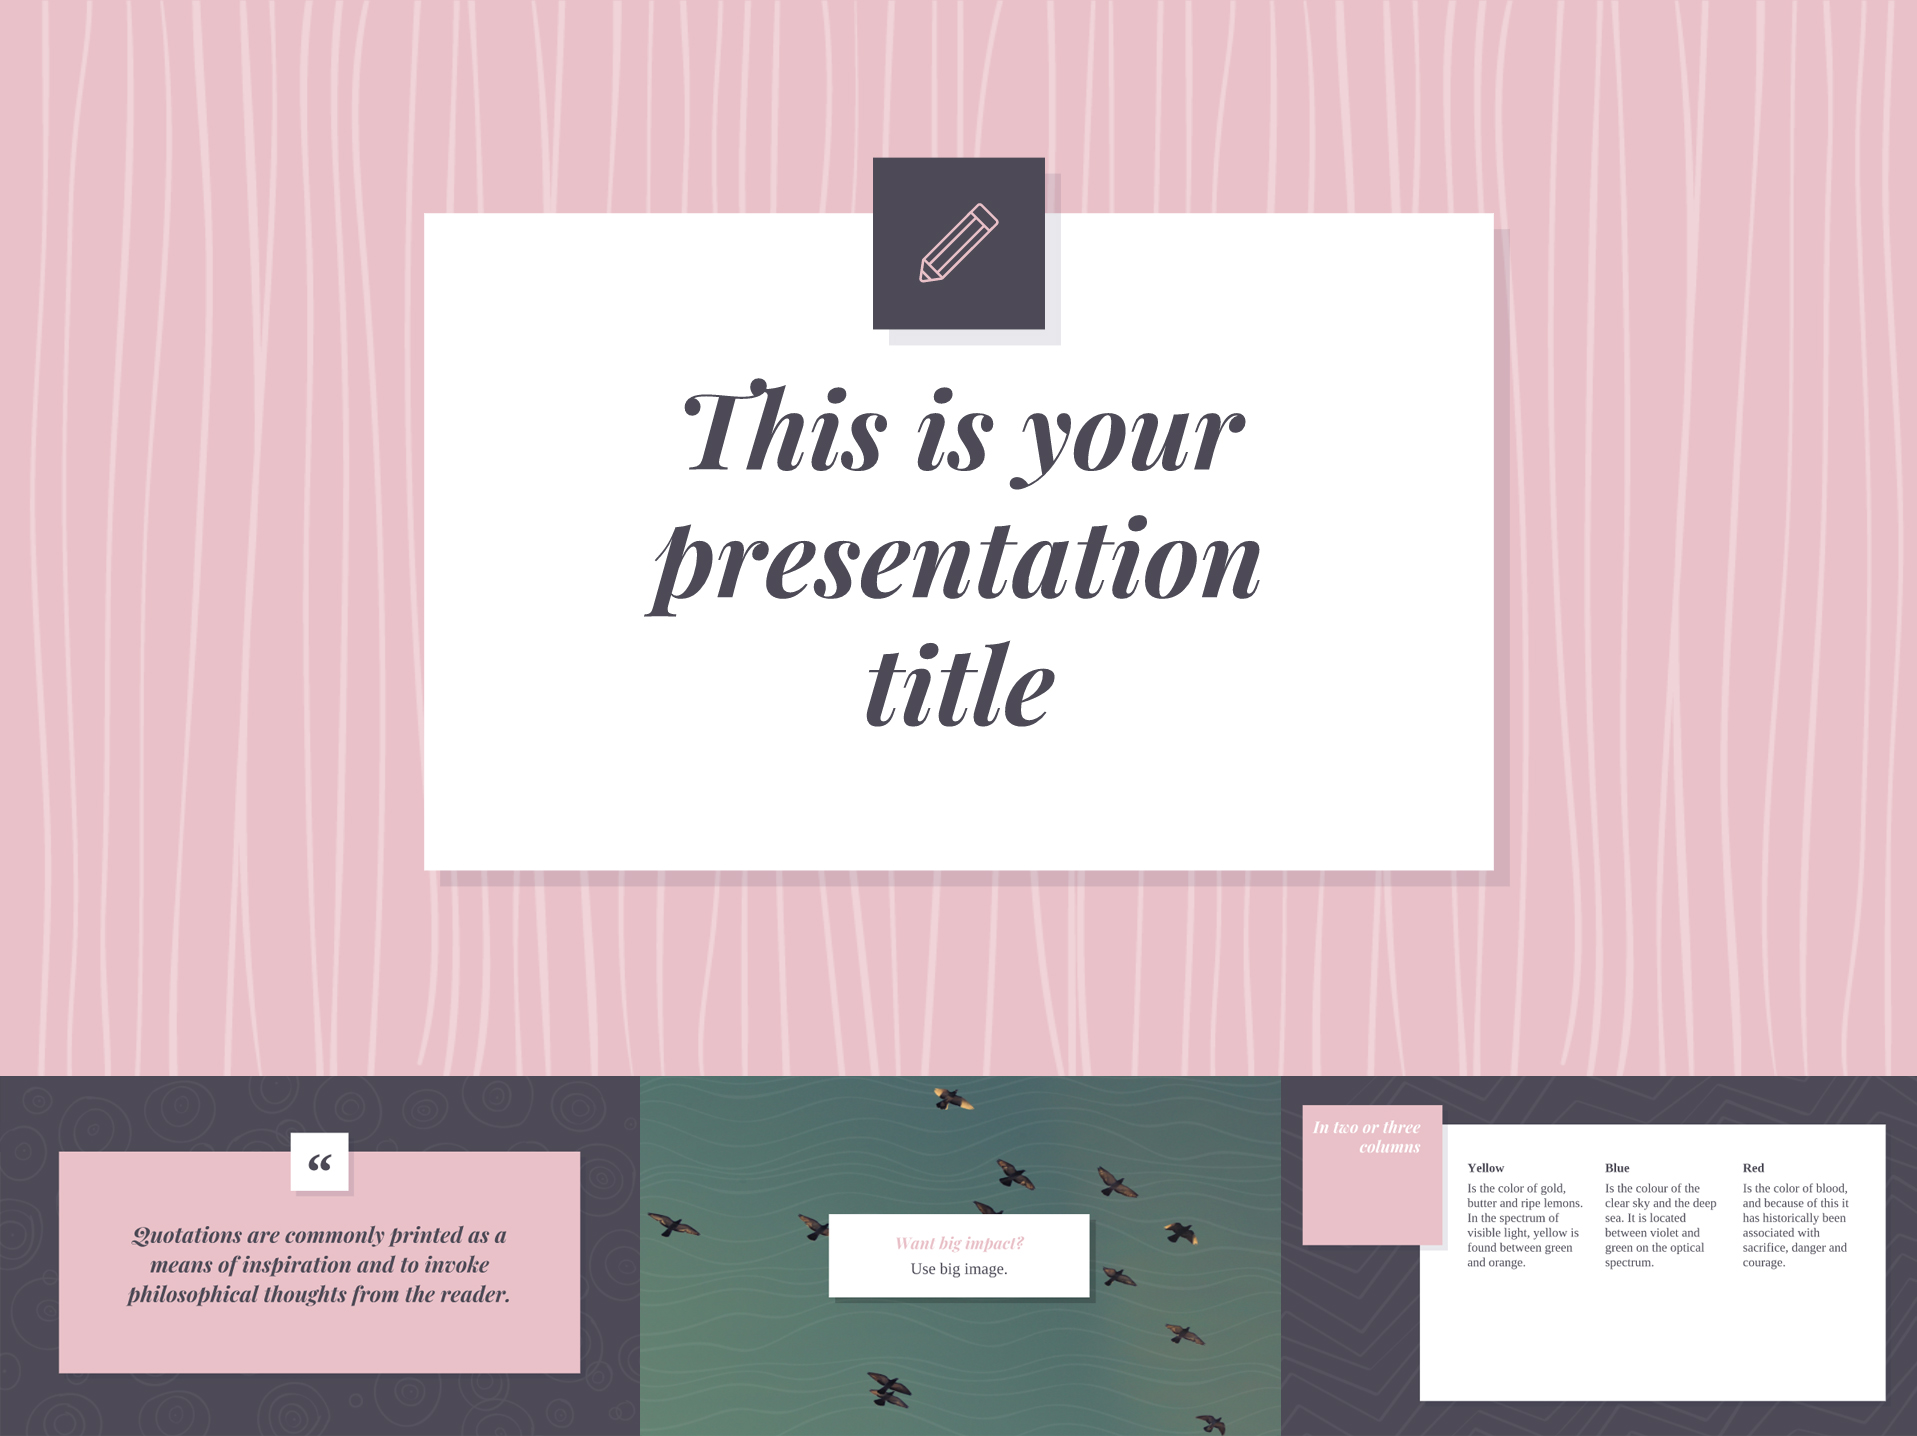 Soft Pink Google Slides Templates Available for Free - The Internet Tips